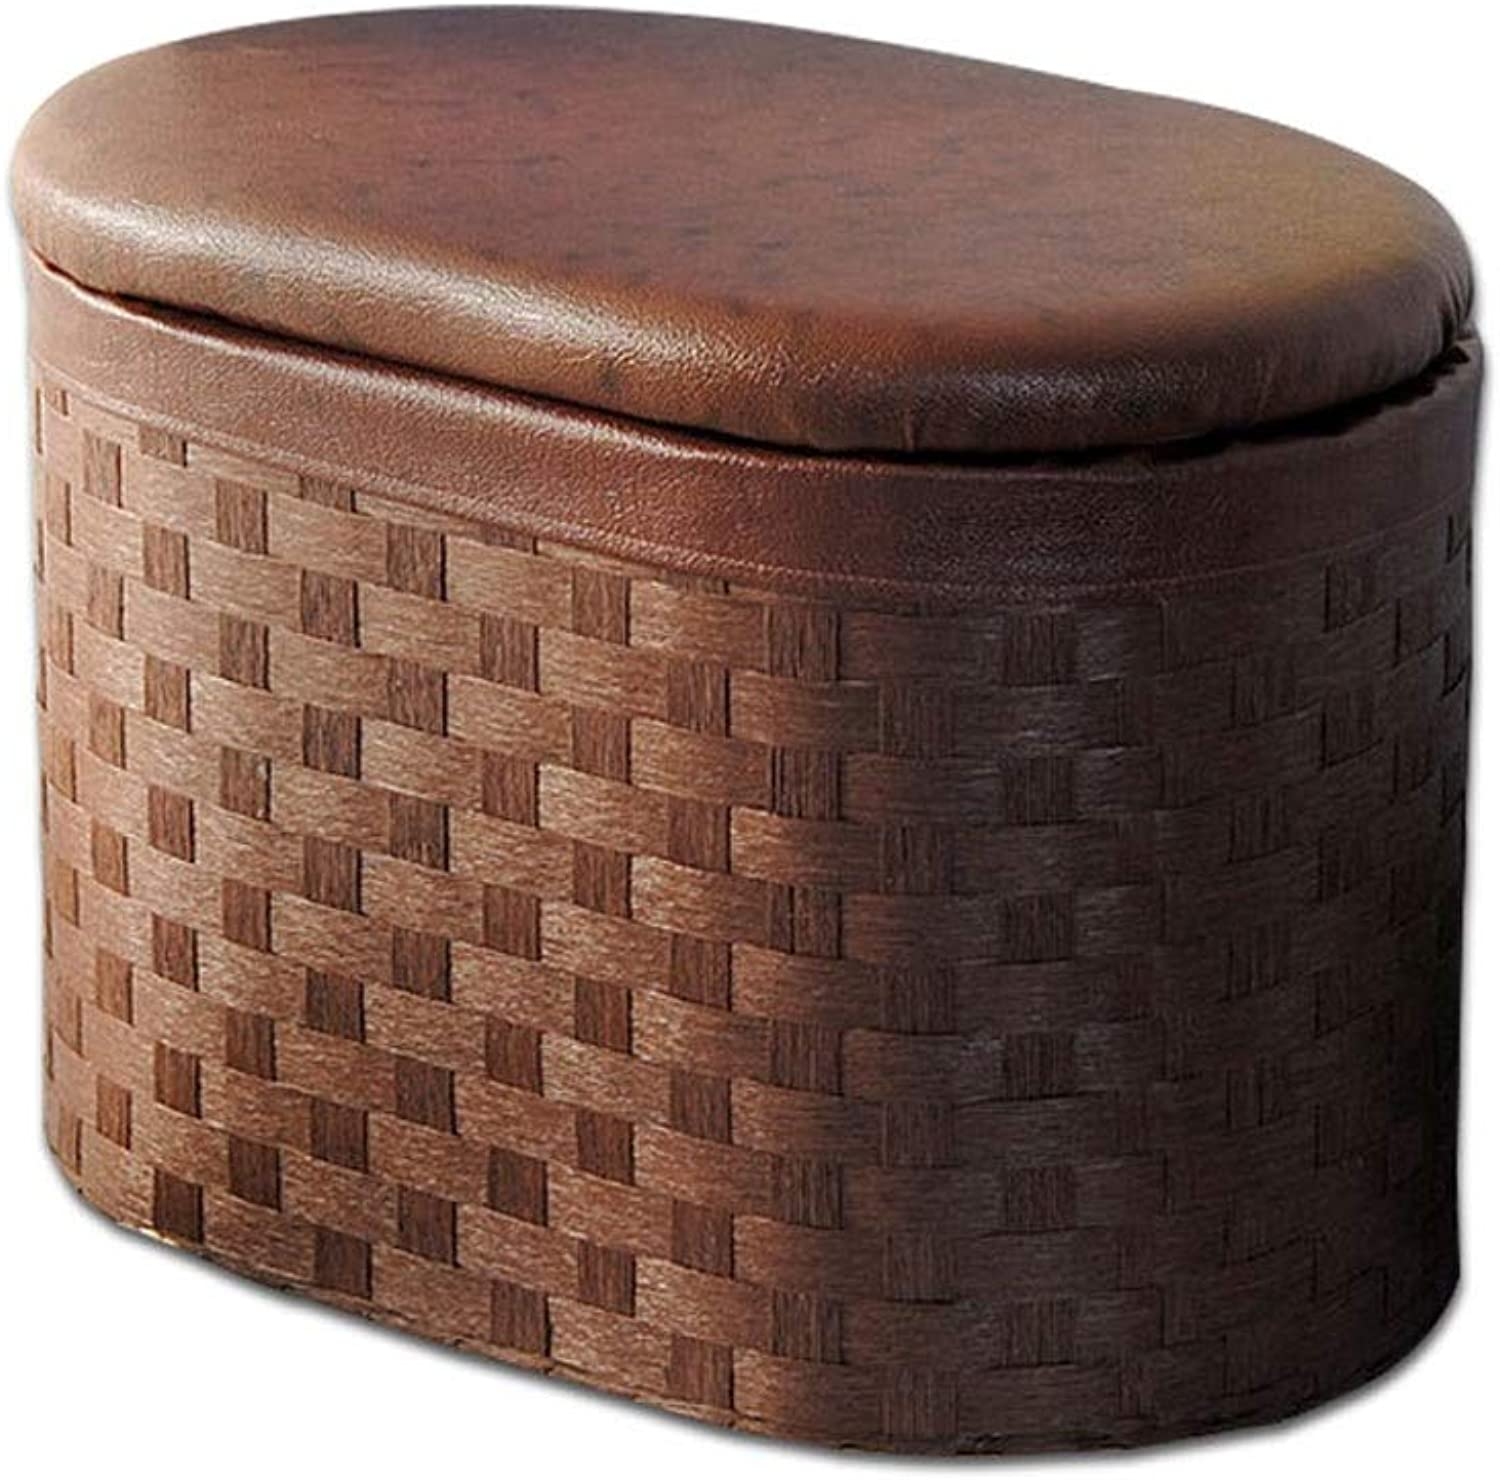 Rattan Stool Nordic Simple Paper Rattan shoes Bench Foot Stool Hall Stool Living Room Can Sit People Multifunctional Toy Storage Box Sofa Stool (Size   M)